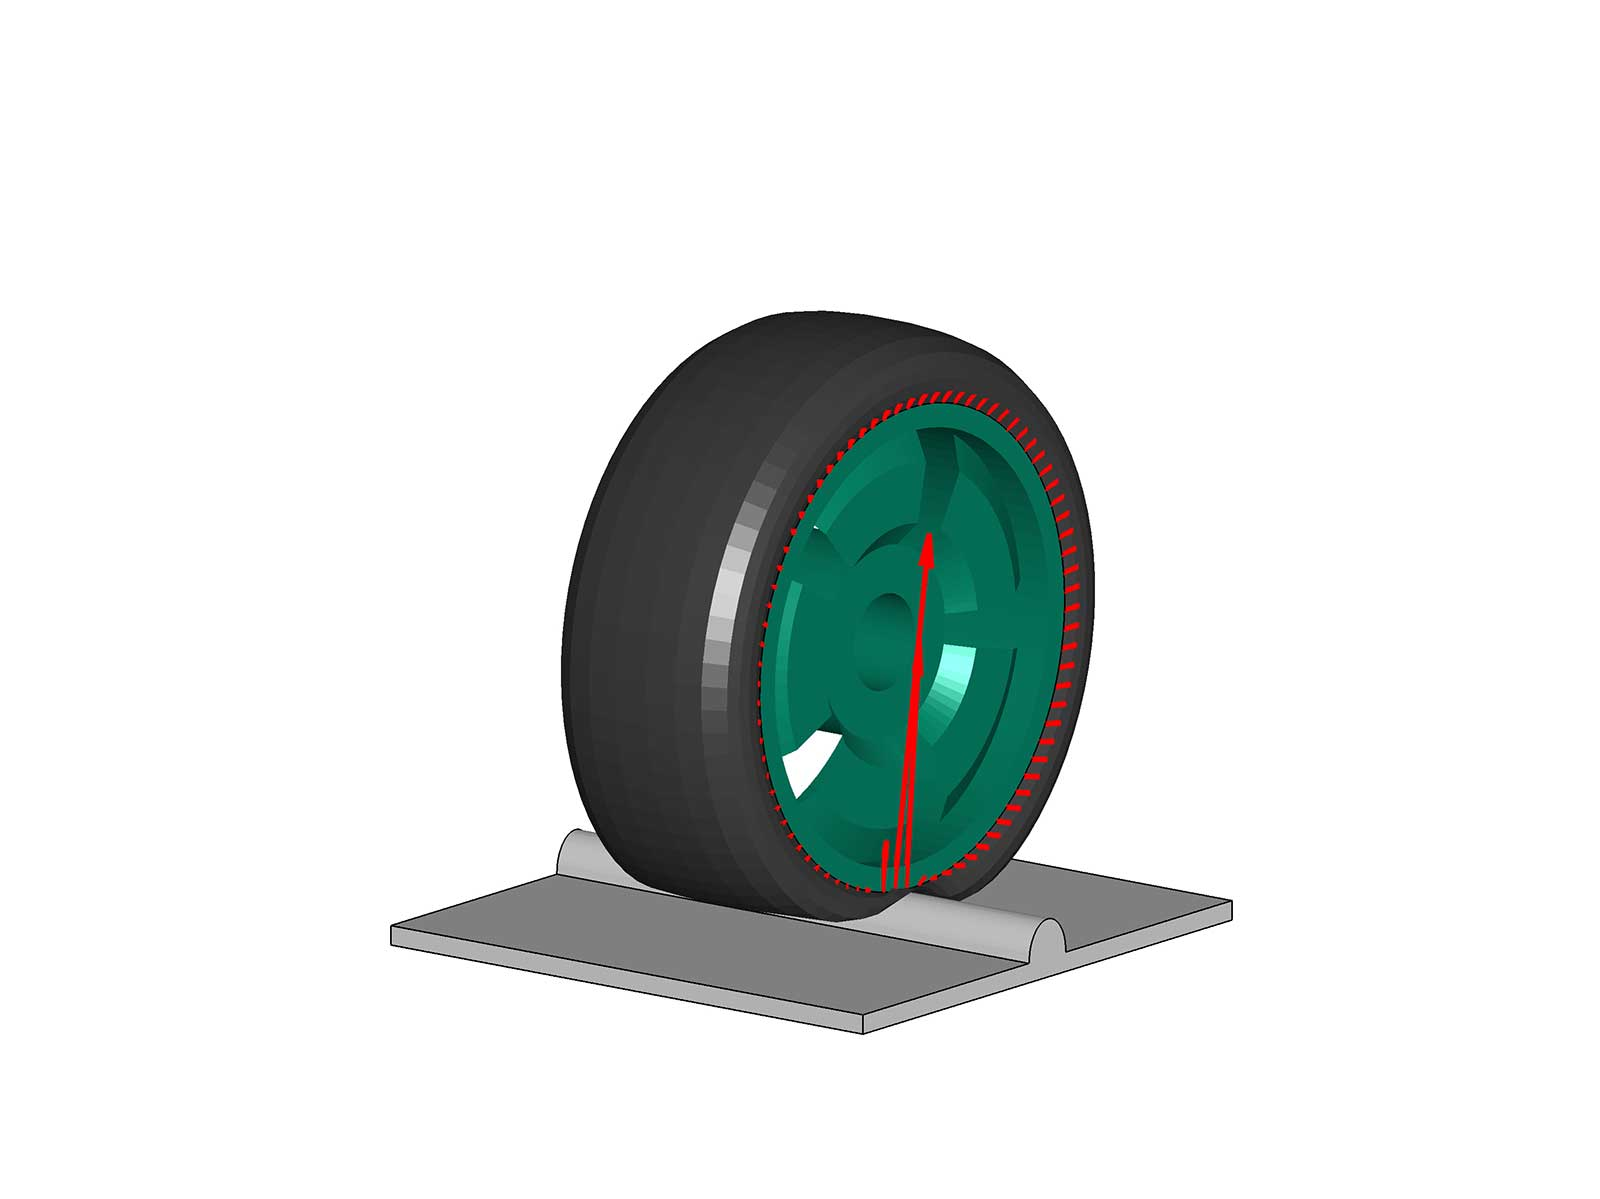 ITWM Virtual vehicle testing modeling tires realistically